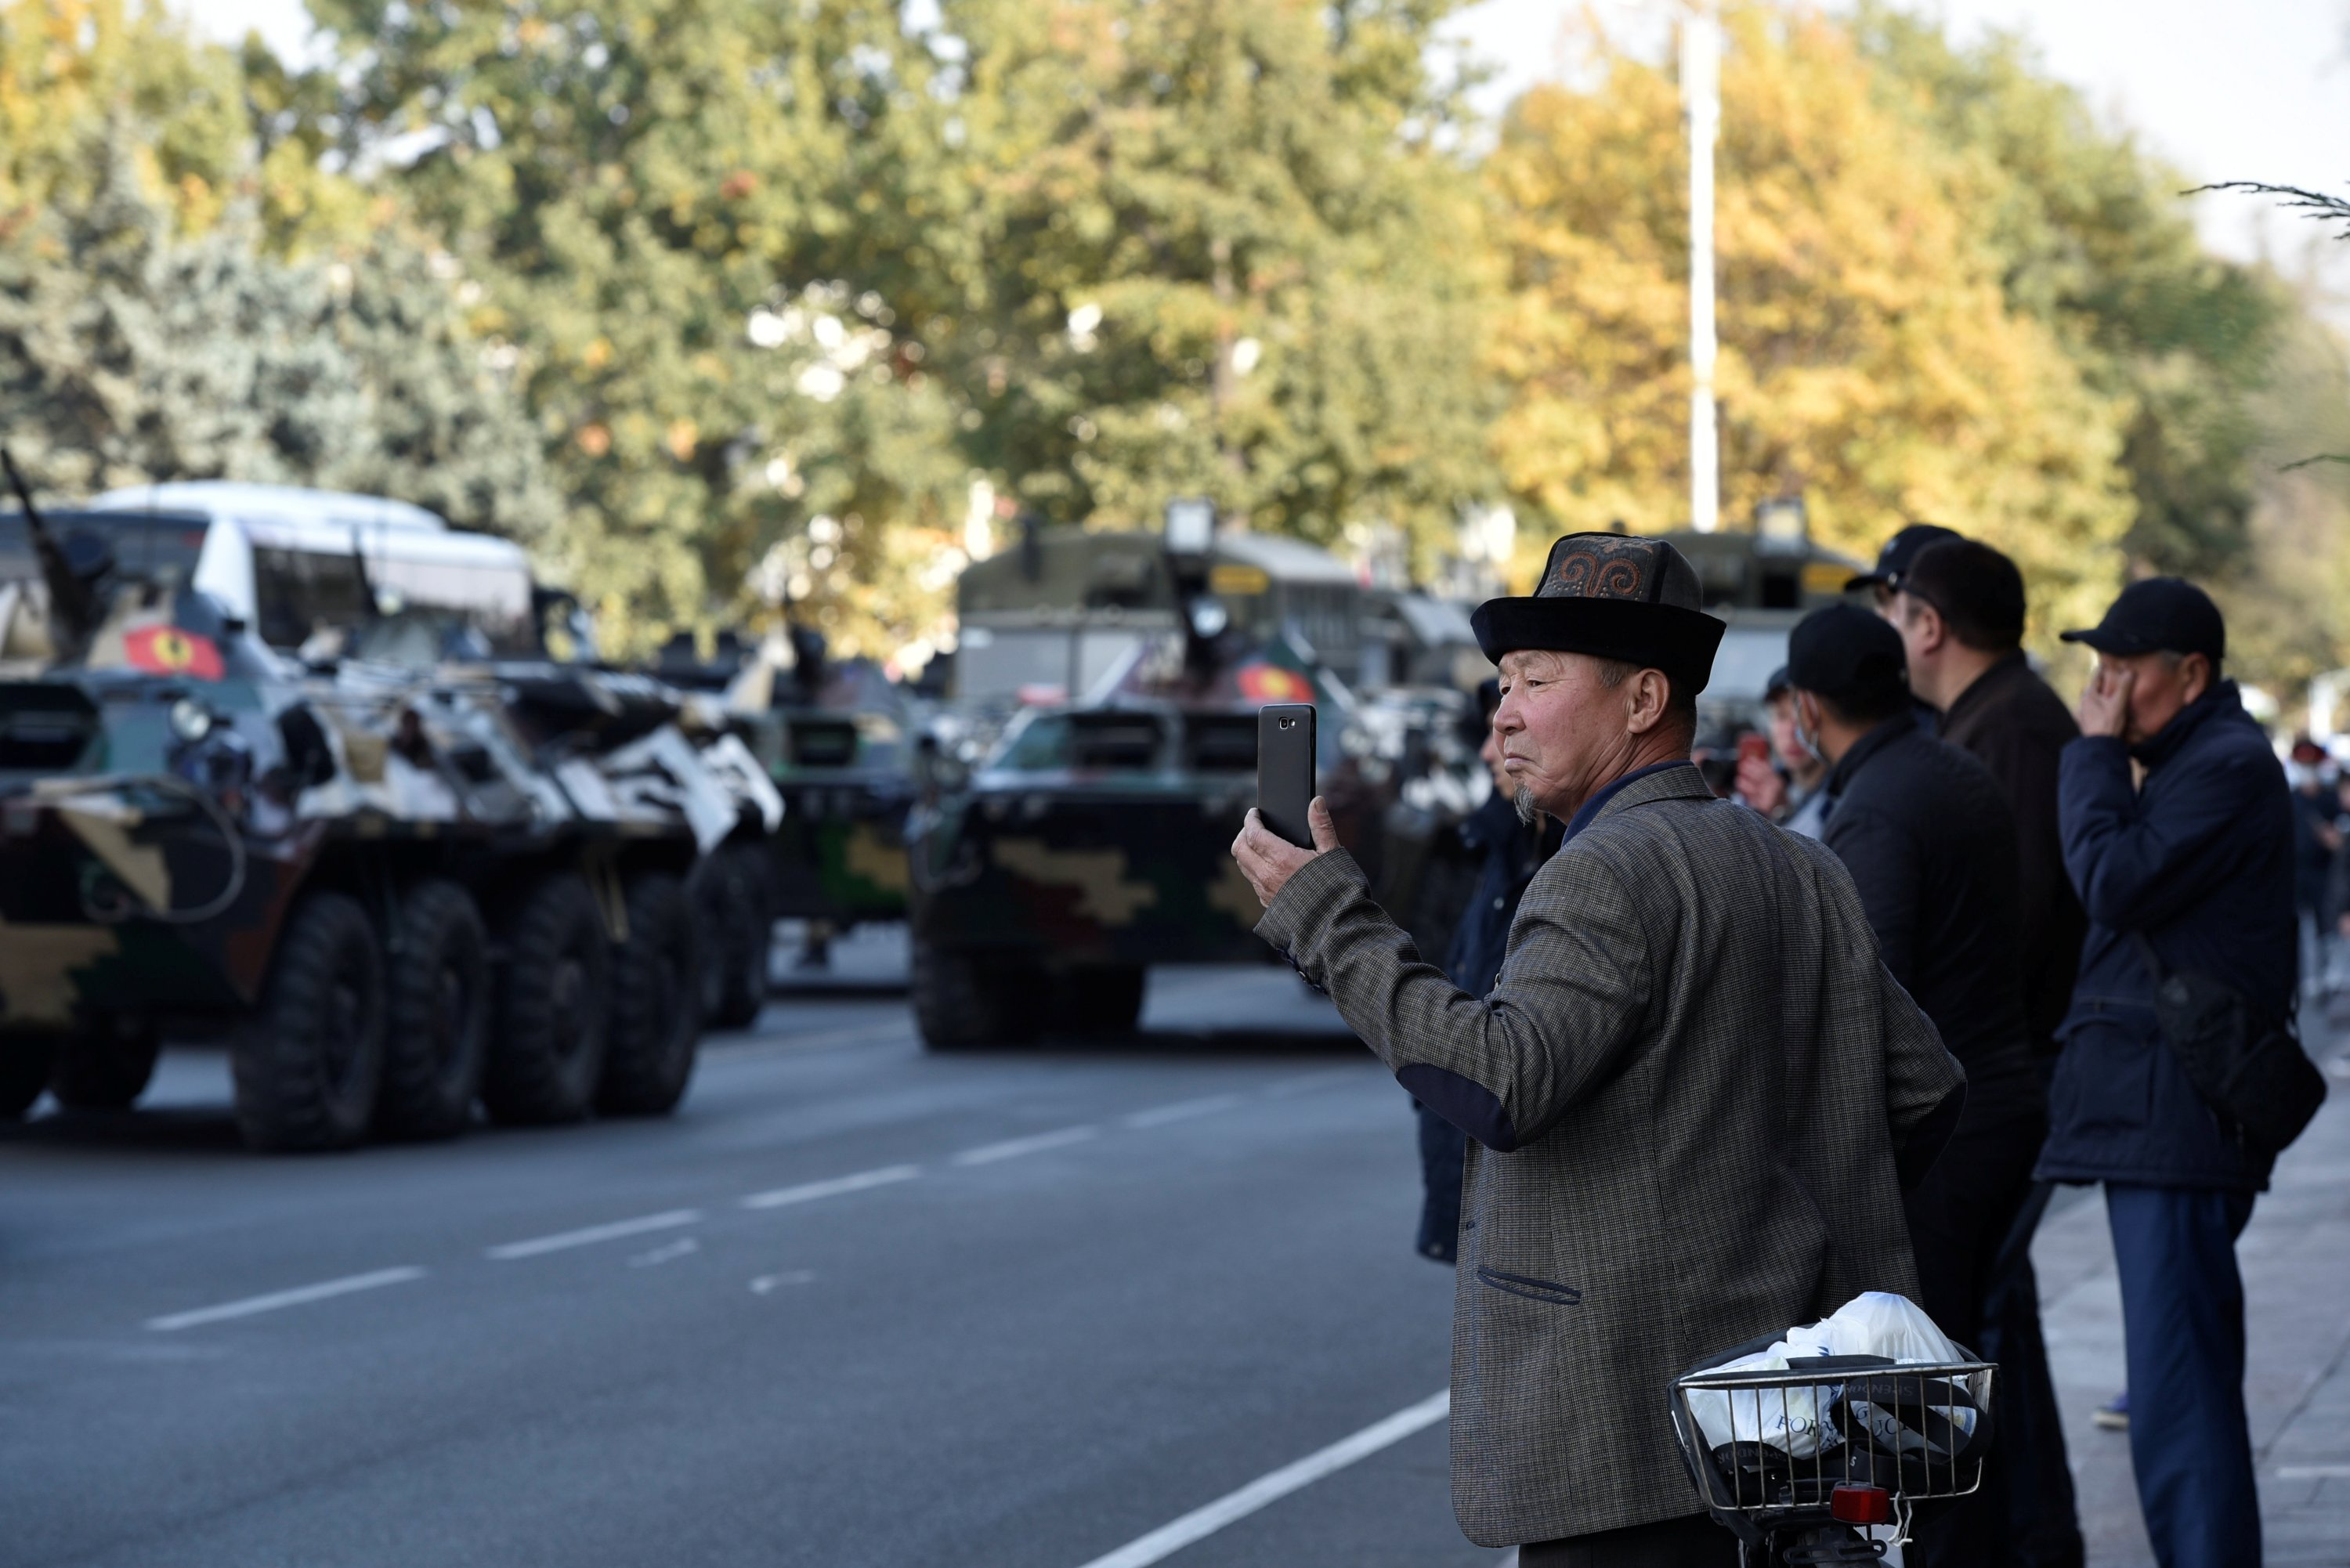 Local residents watch as Kyrgyz military vehicles drive along the street after President Sooronbai Jeenbekov declared a state of emergency in the capital and ordered troops to be deployed there, in Bishkek, Kyrgyzstan Oct. 10, 2020. (Reuters Photo)